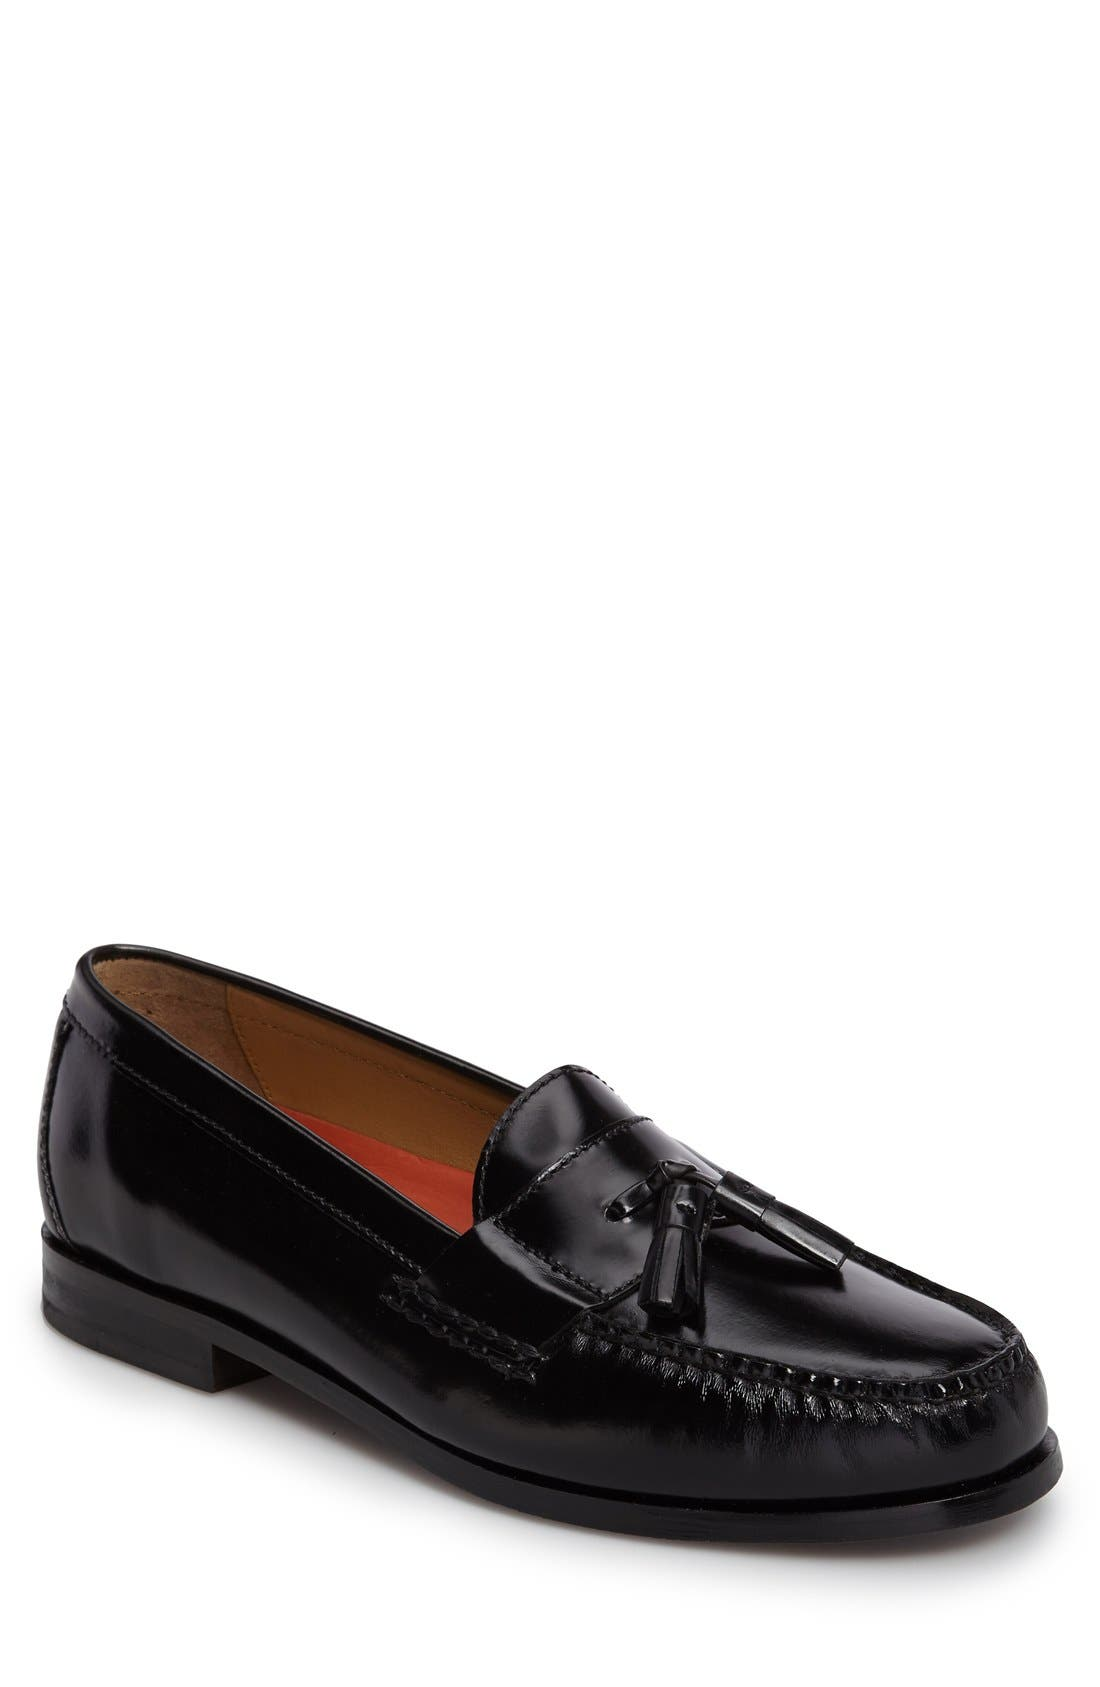 Alternate Image 1 Selected - Cole Haan 'Pinch Grand' Tassel Loafer (Men)